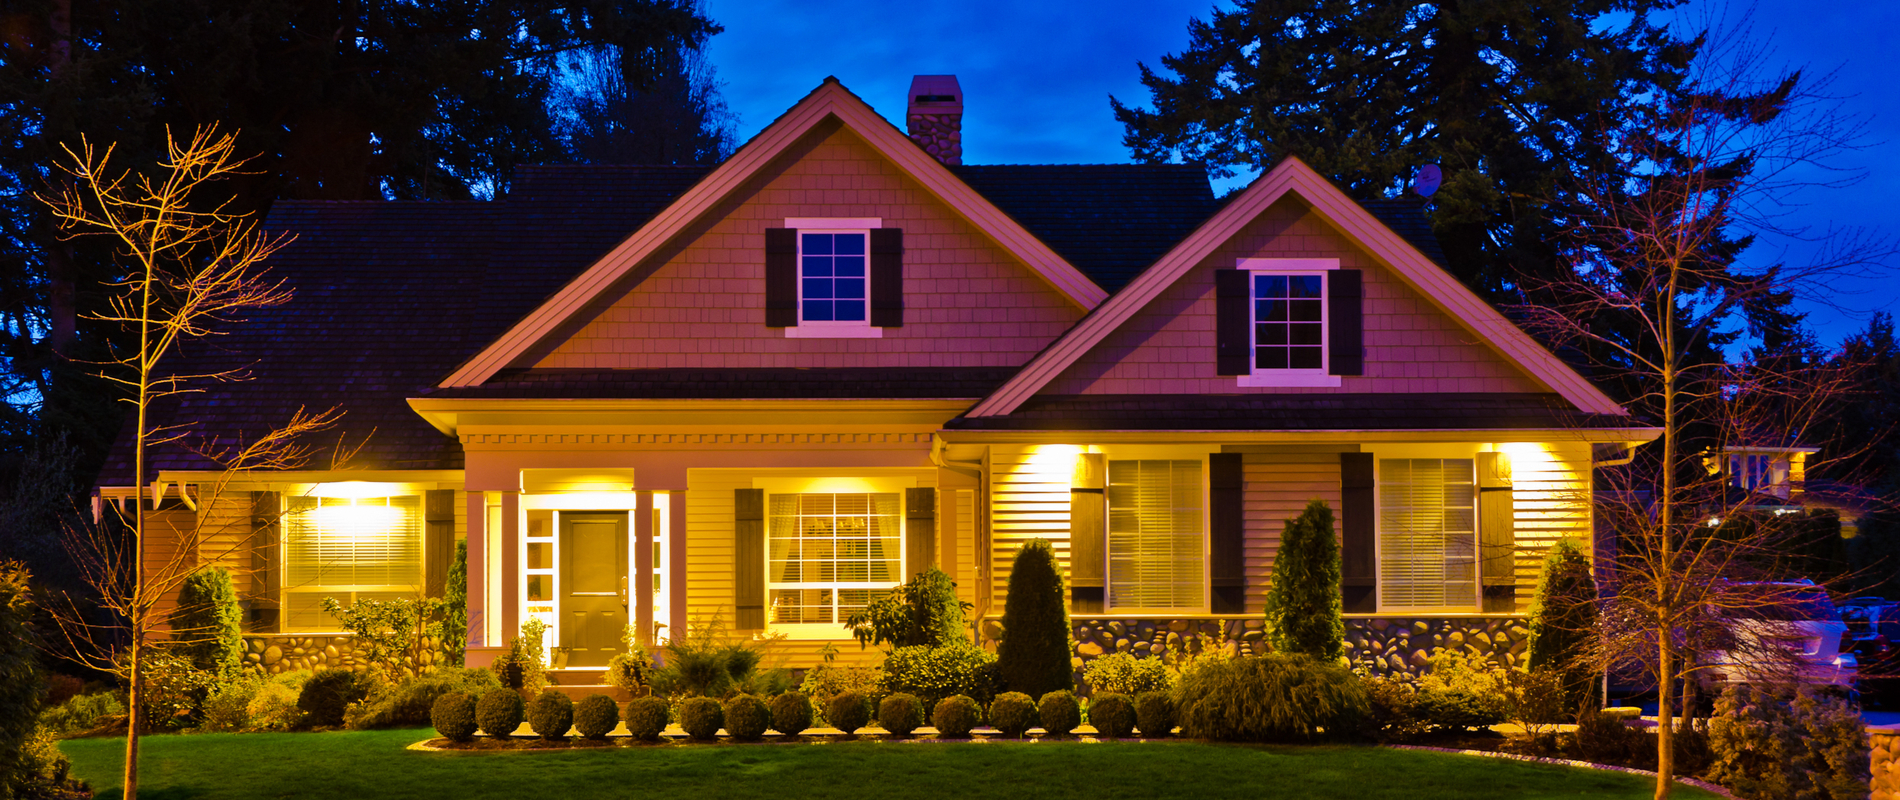 outdoor lighting Sappington - best outdoor lighting Sappington MO - outdoor lighting services Sappington MO